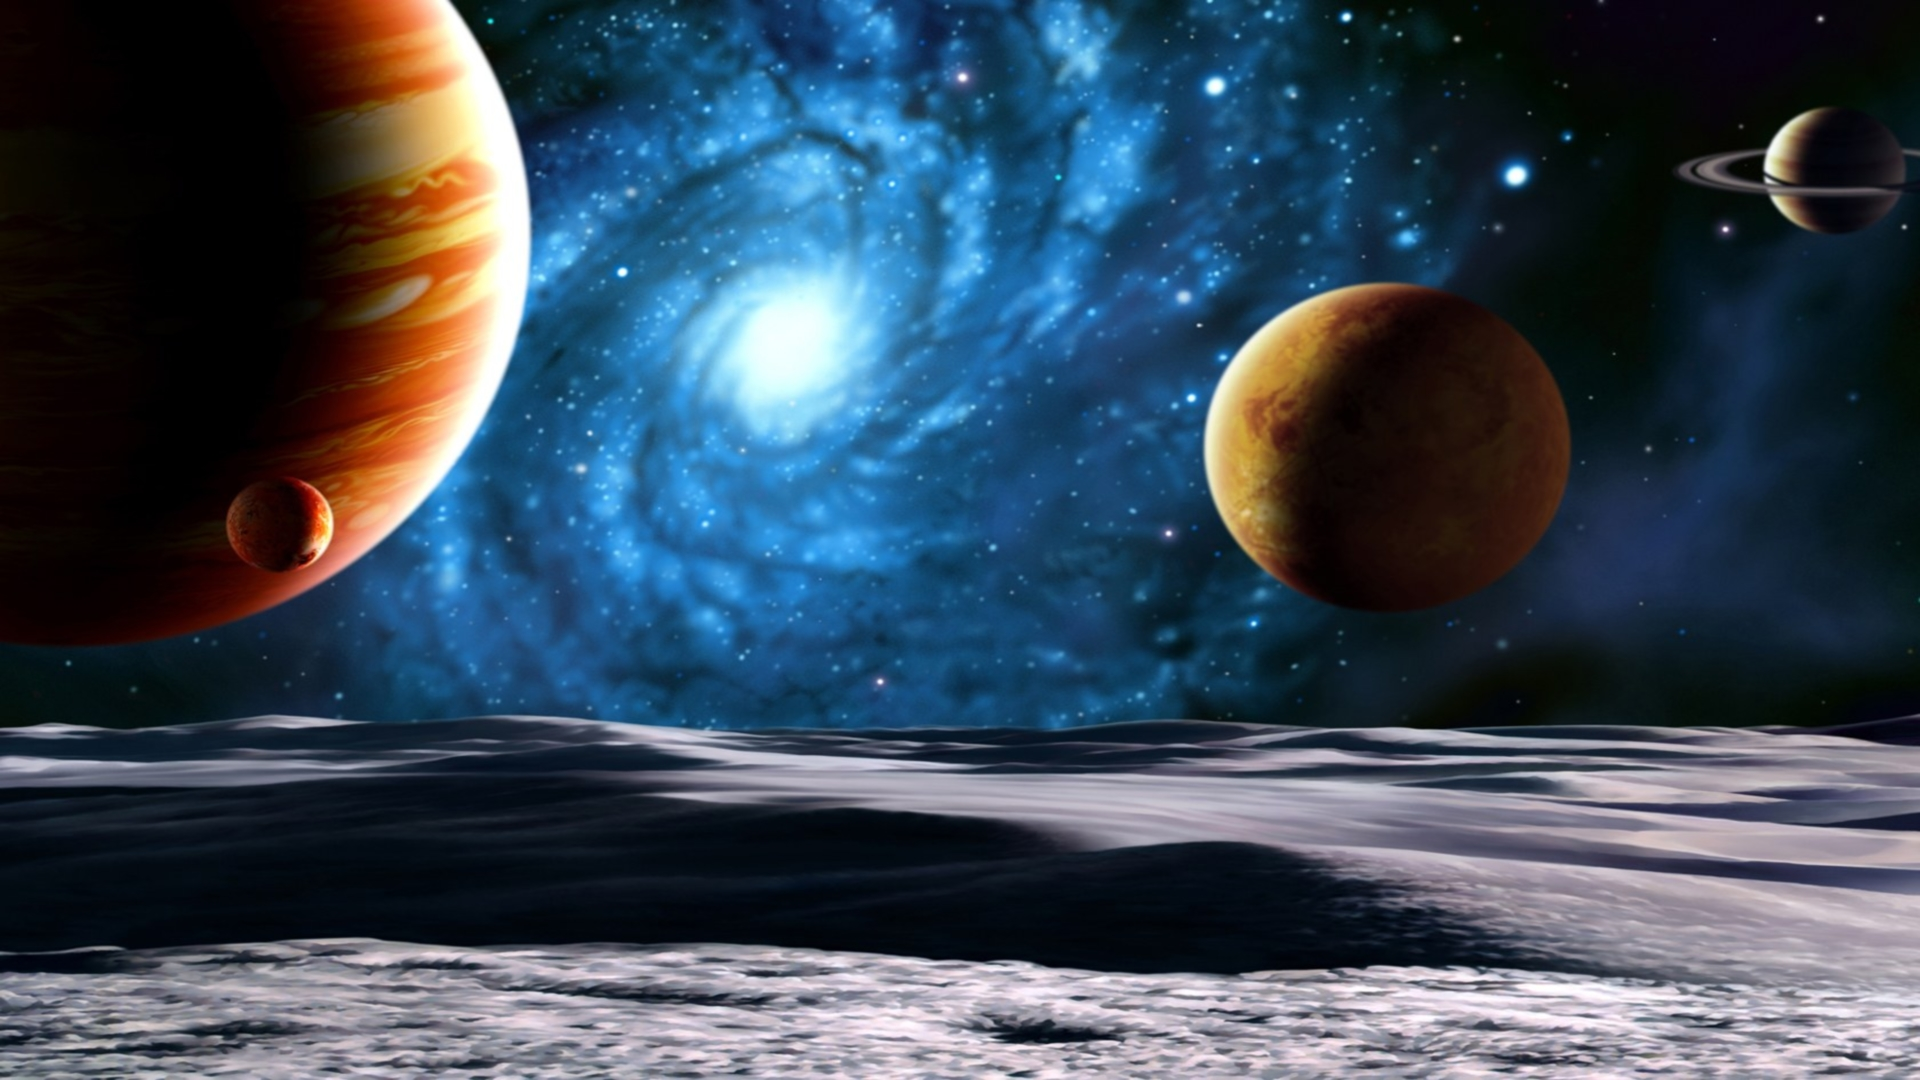 Awesome space hd wallpapers i have a pc i have a pc - Space wallpaper pc ...